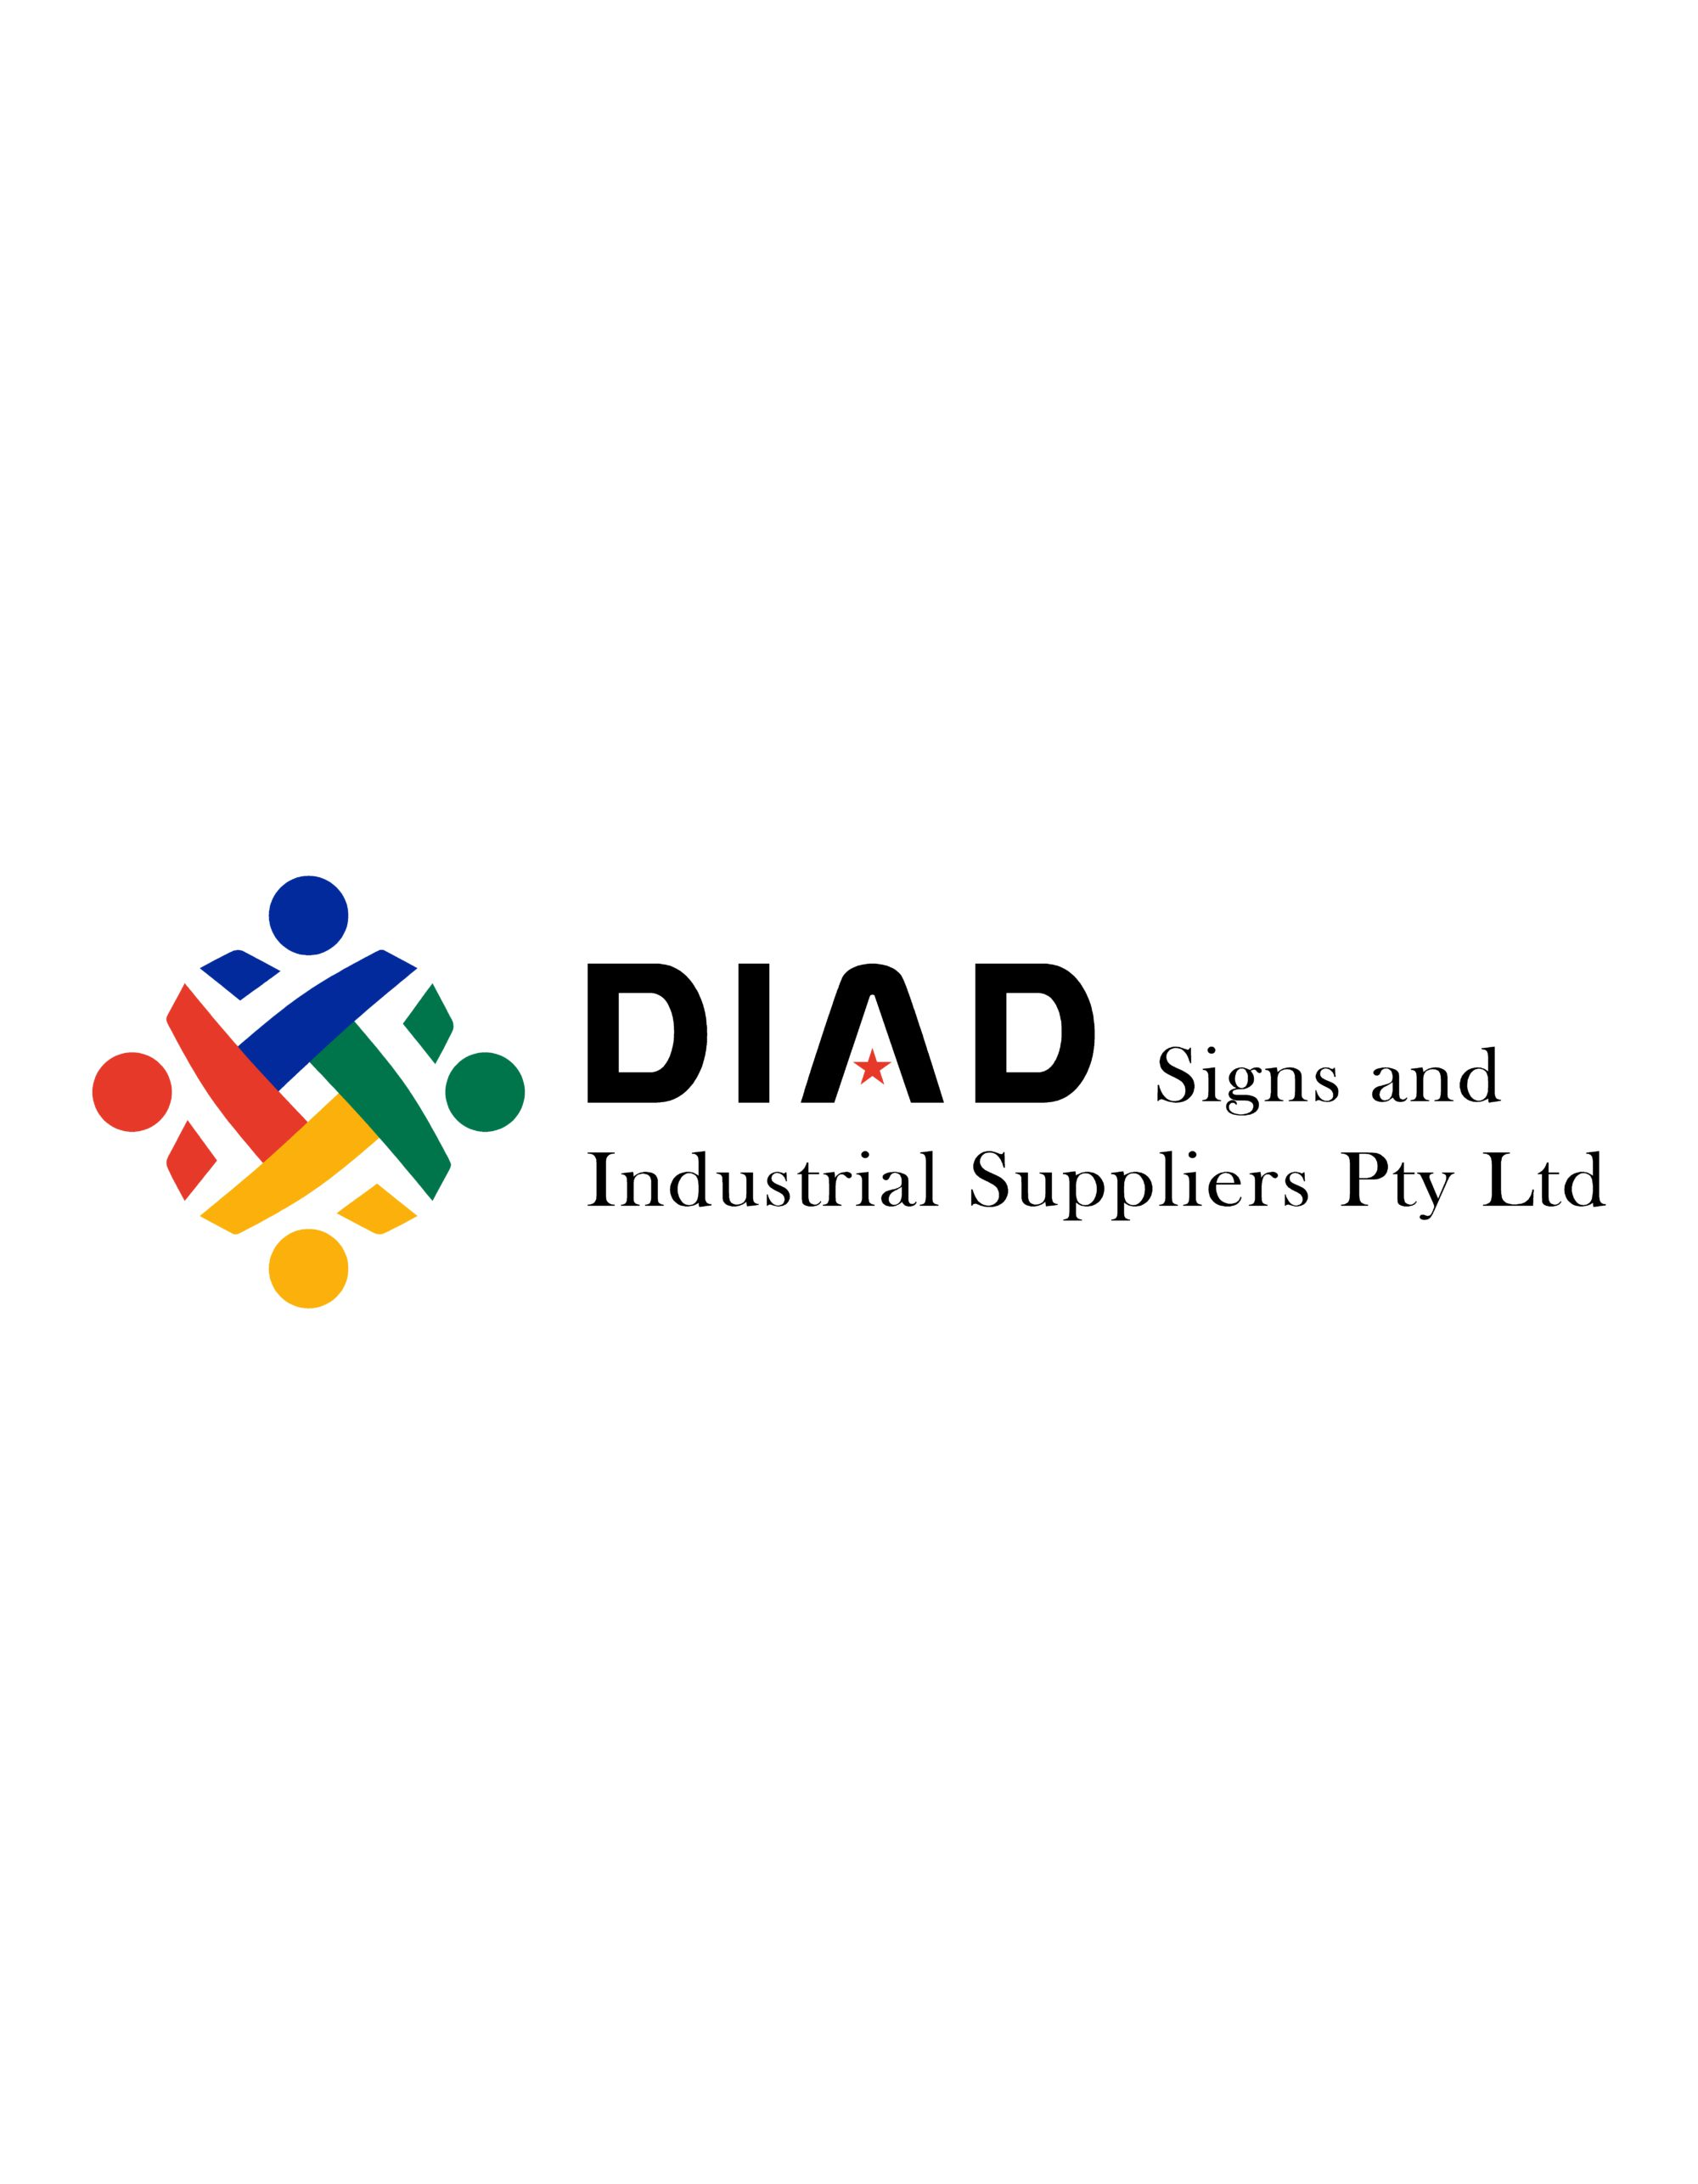 Diad Signs & Industrial Suppliers